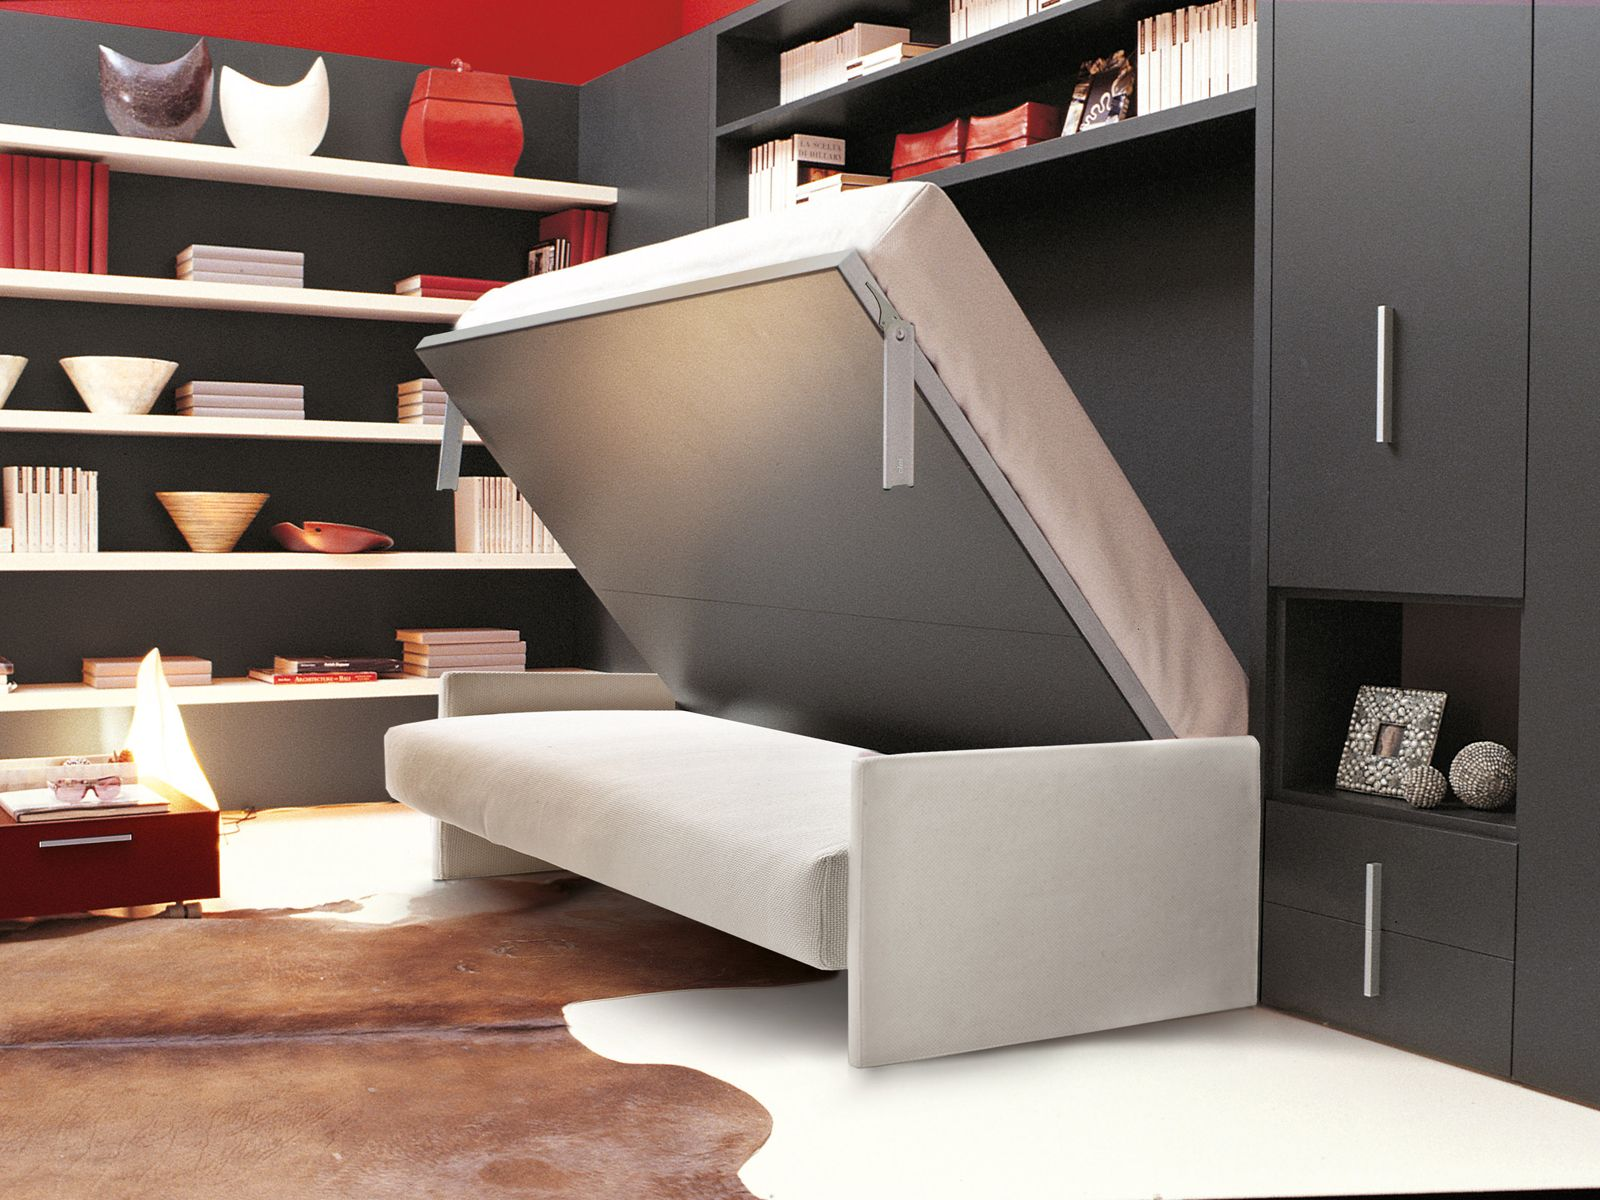 Mueble modular de pared con cama abatible CIRCE SOFA by CLEI